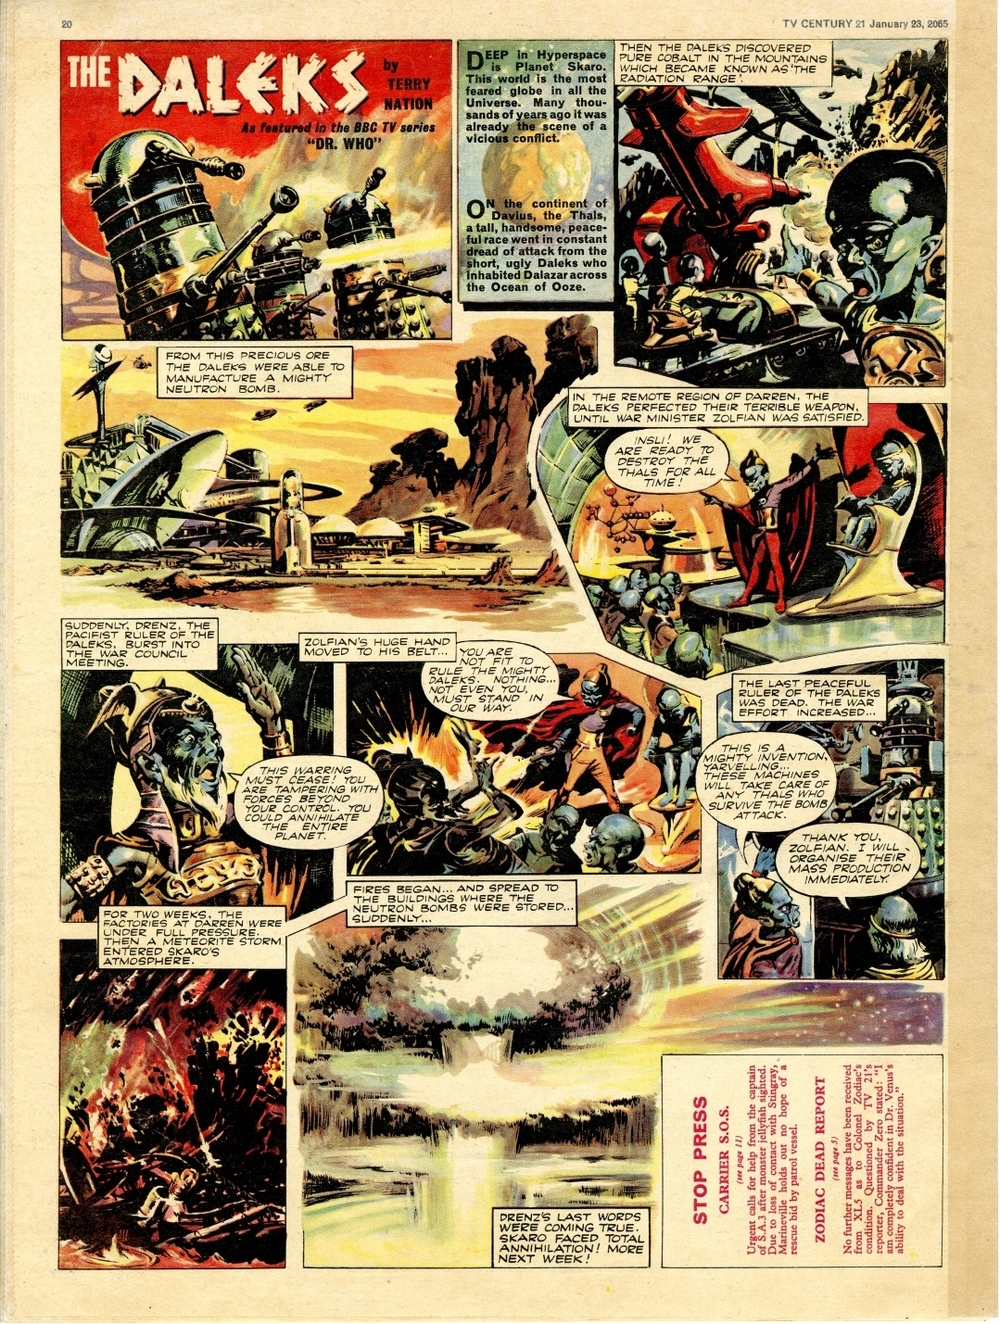 TV Century 21 #1, January 23, 2065 (1965); first Dalek strip